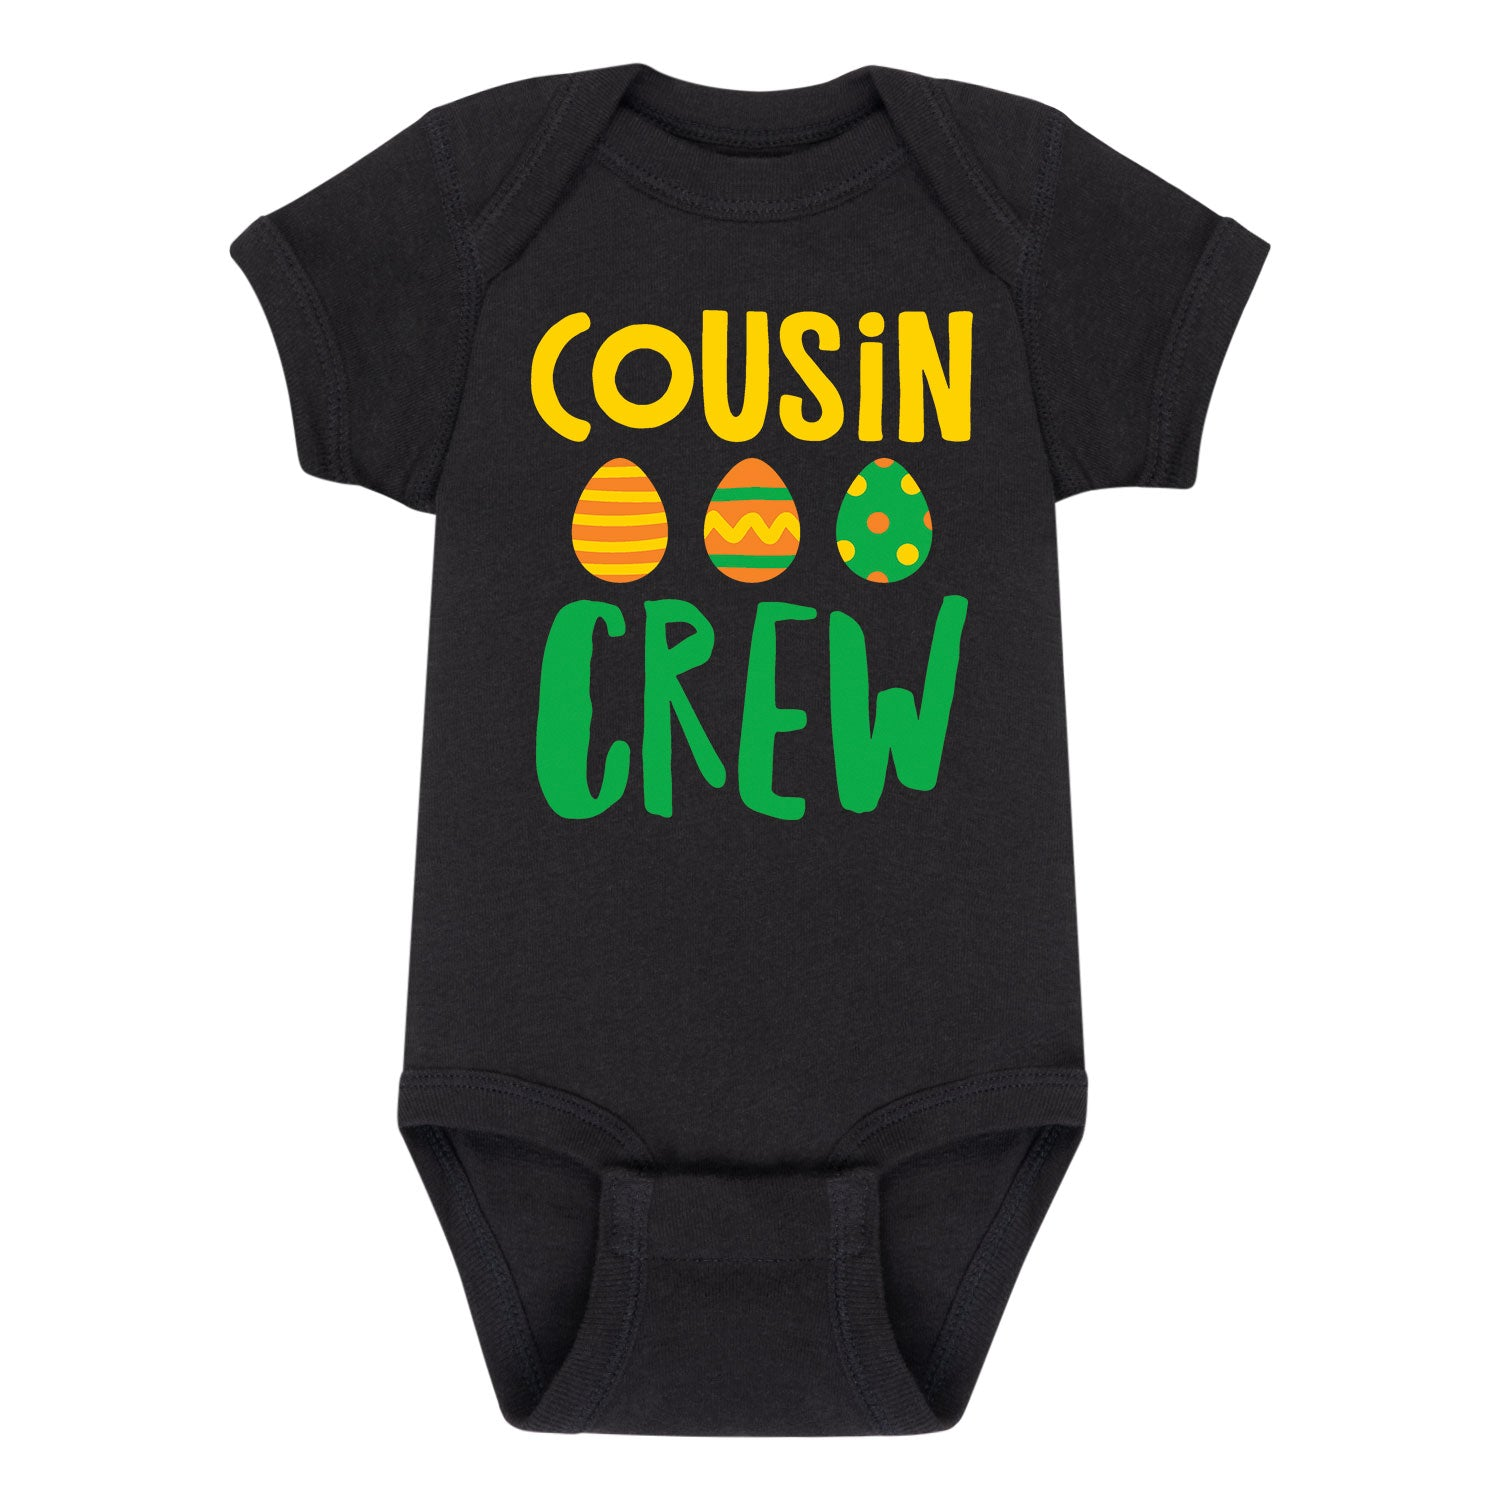 Cousin Crew Easter - Infant One Piece